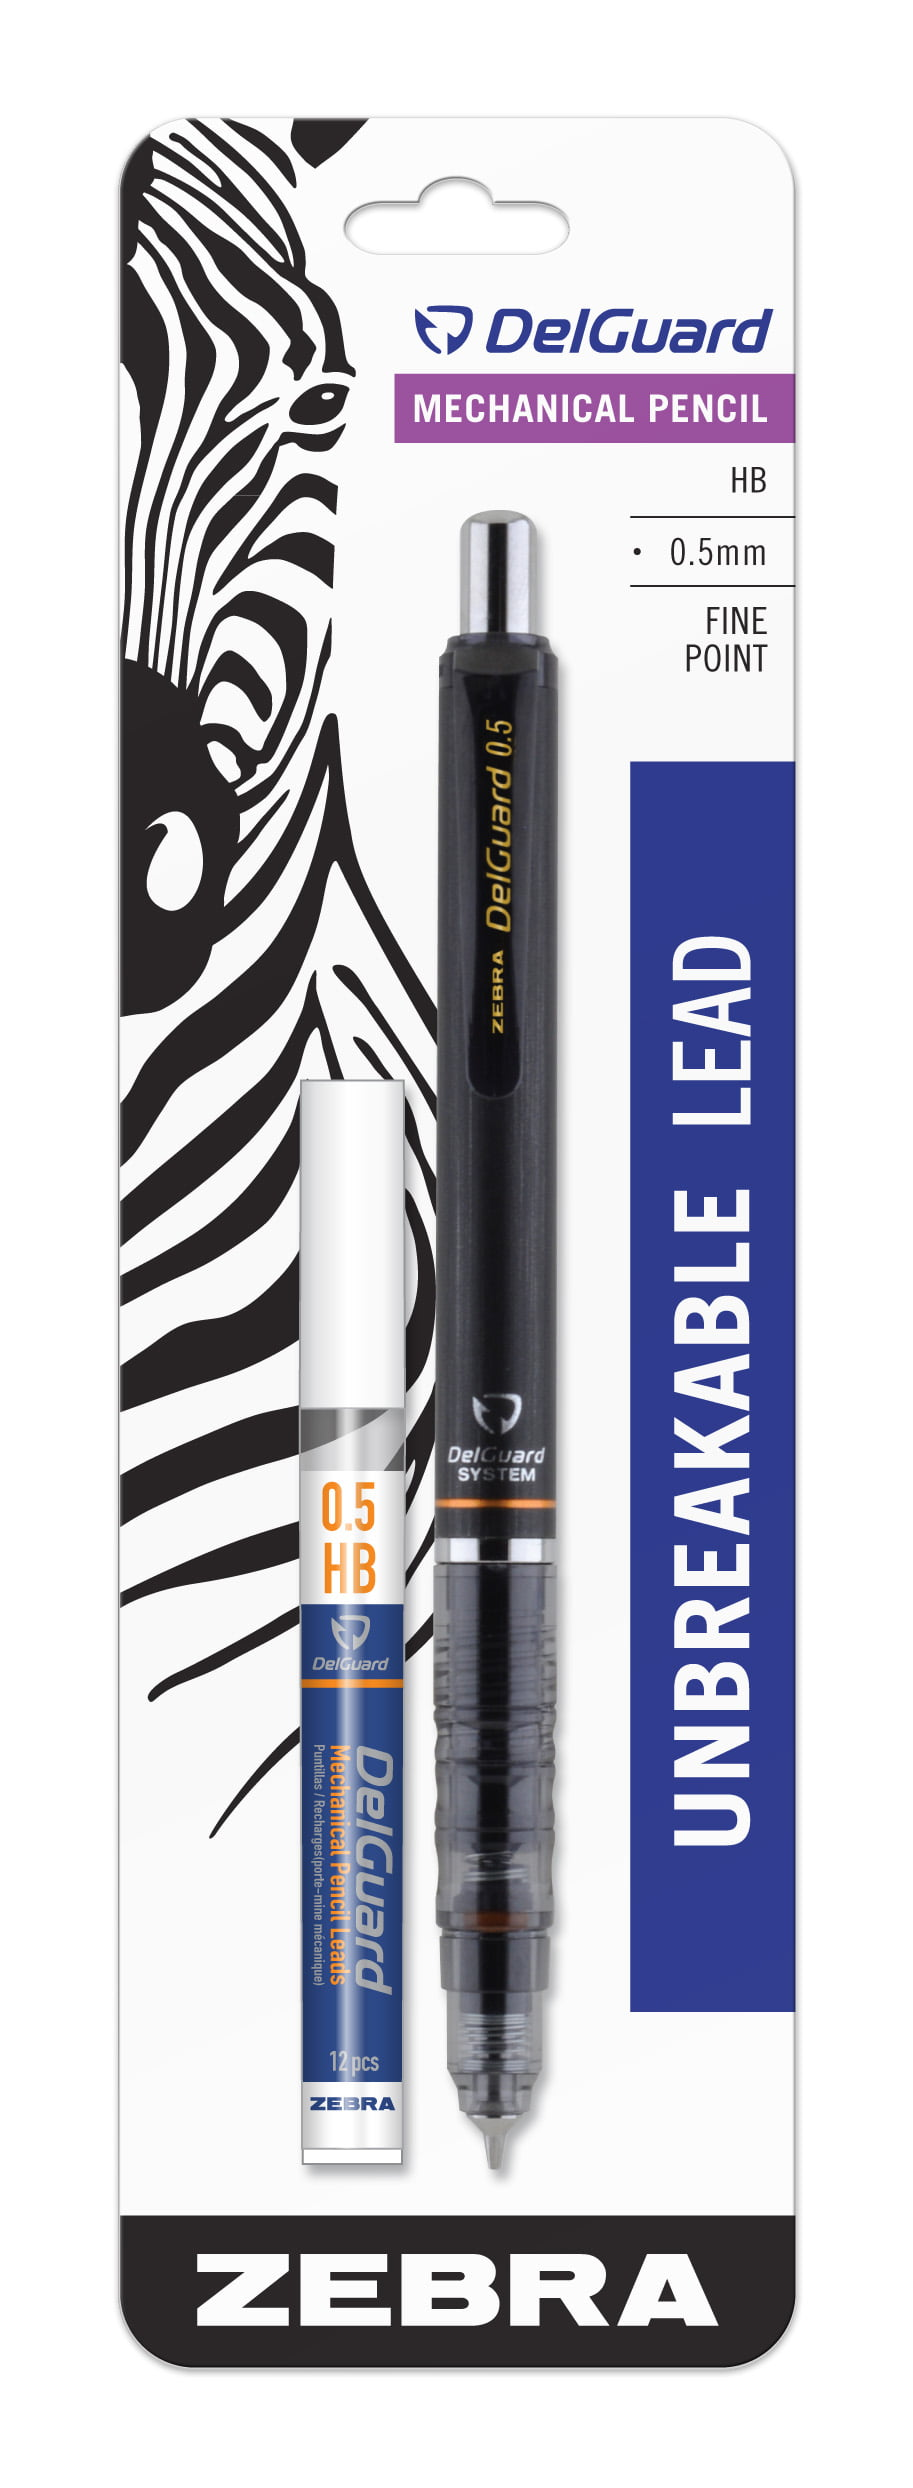 Zebra DelGuard Mechanical Pencil with Bonus Lead Refill, Fine Point, 0.5mm Point Size, Standard #2 HB Lead, Black Barrel, 1-Count